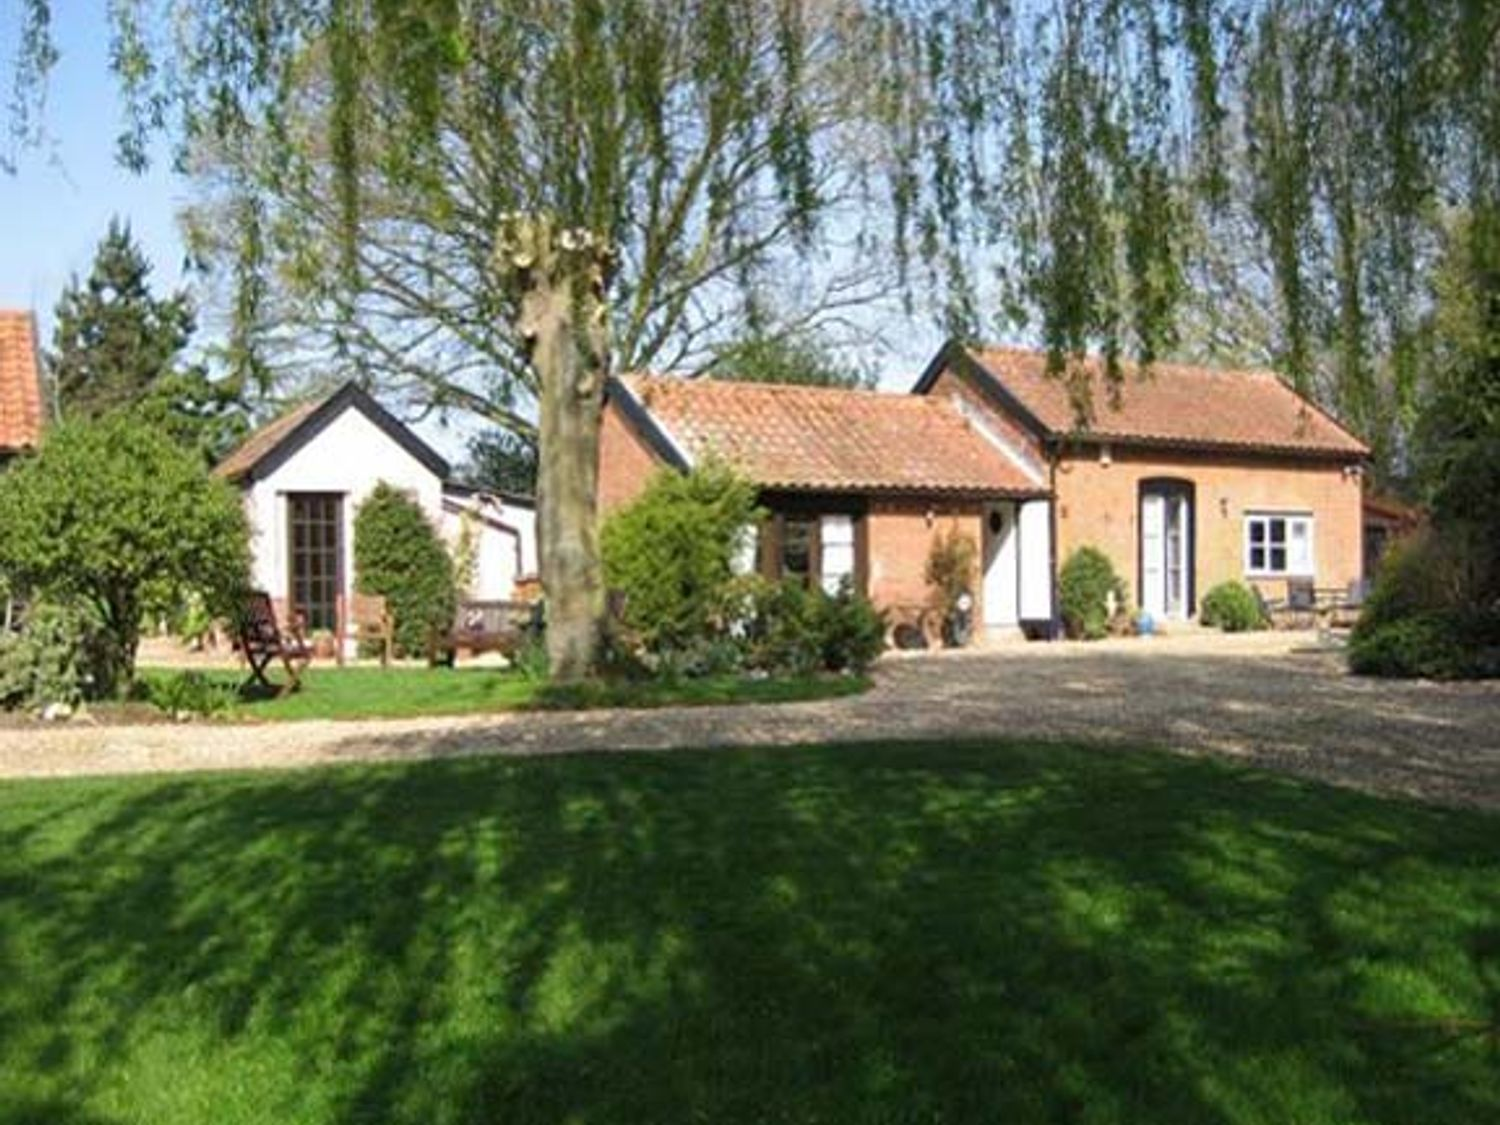 Holiday Cottages in Suffolk: Daffodil Cottage, Waldringfield | sykescottages.co.uk